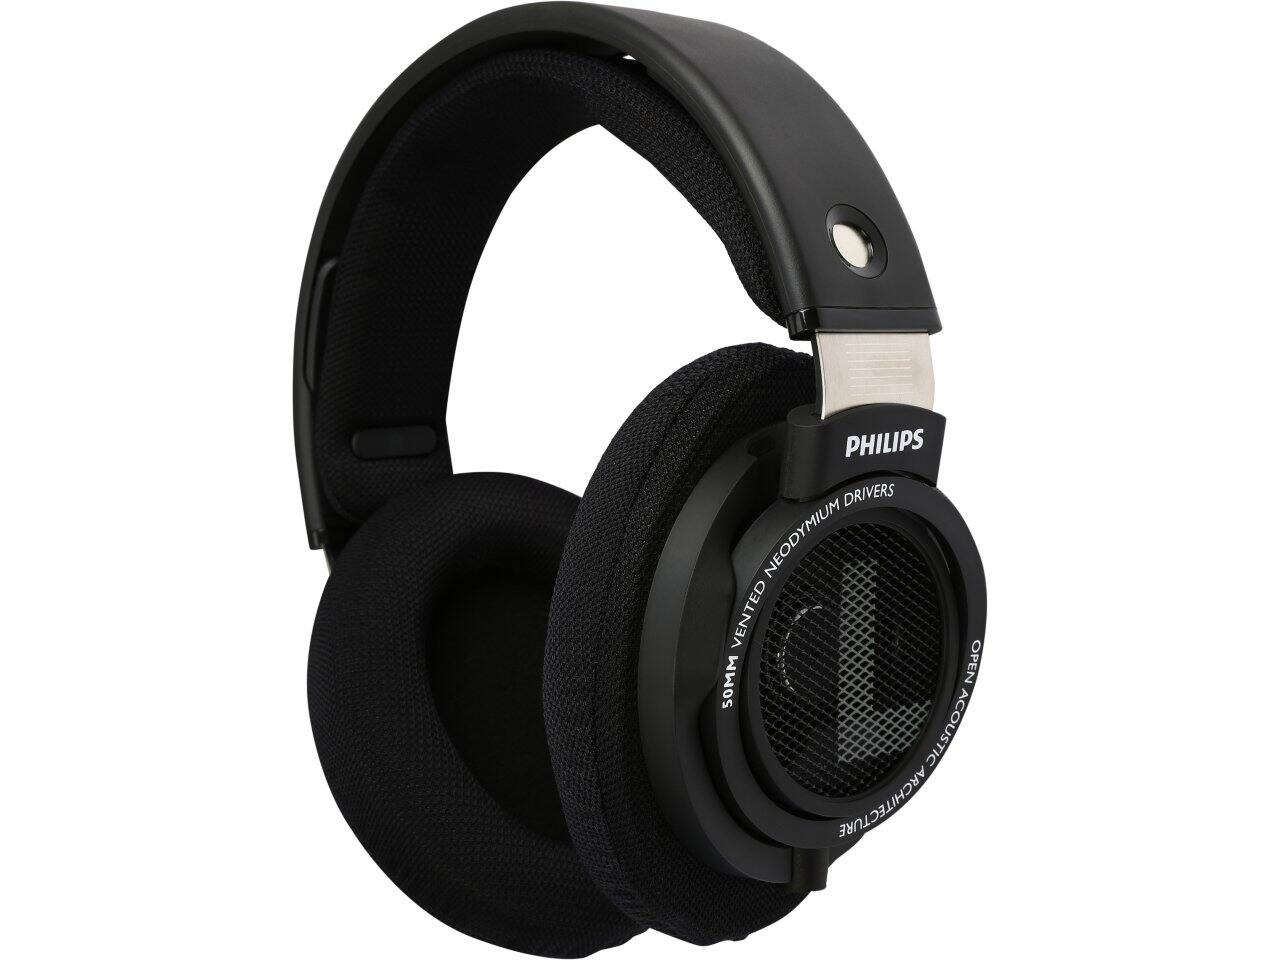 Philips SHP9500 Black Over-Ear Headphones for $57.99, JBL Synchros S300 On-Ear Headphones w/ iOS Remote & Mic for $34.99 AR & More + Free Shipping @ Newegg.com